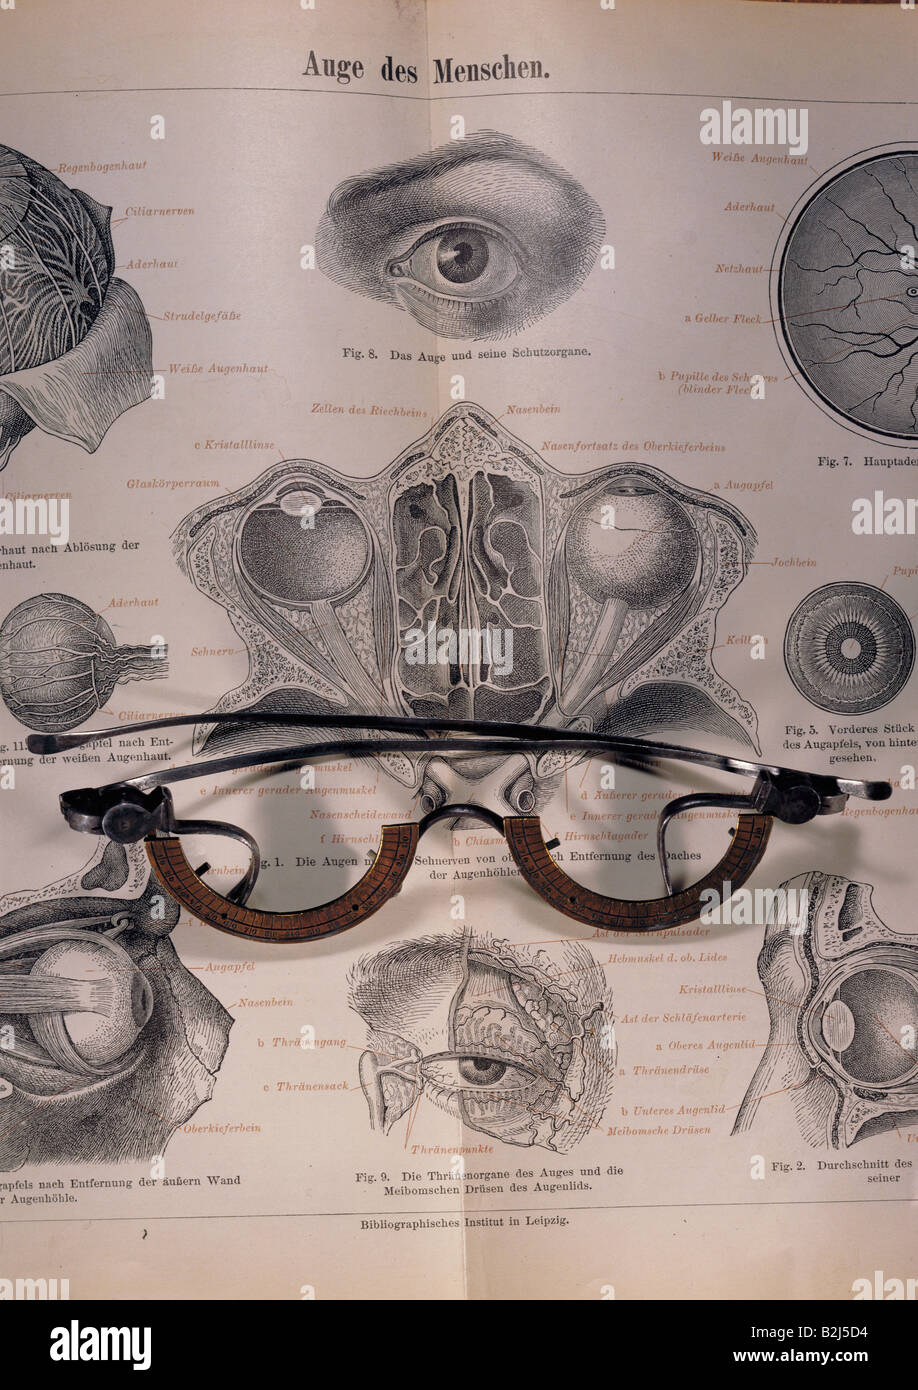 medicine, ophthalmology, frame to measure the strength of glasses, tableau, human eye, Germany, early 20th century, - Stock Image